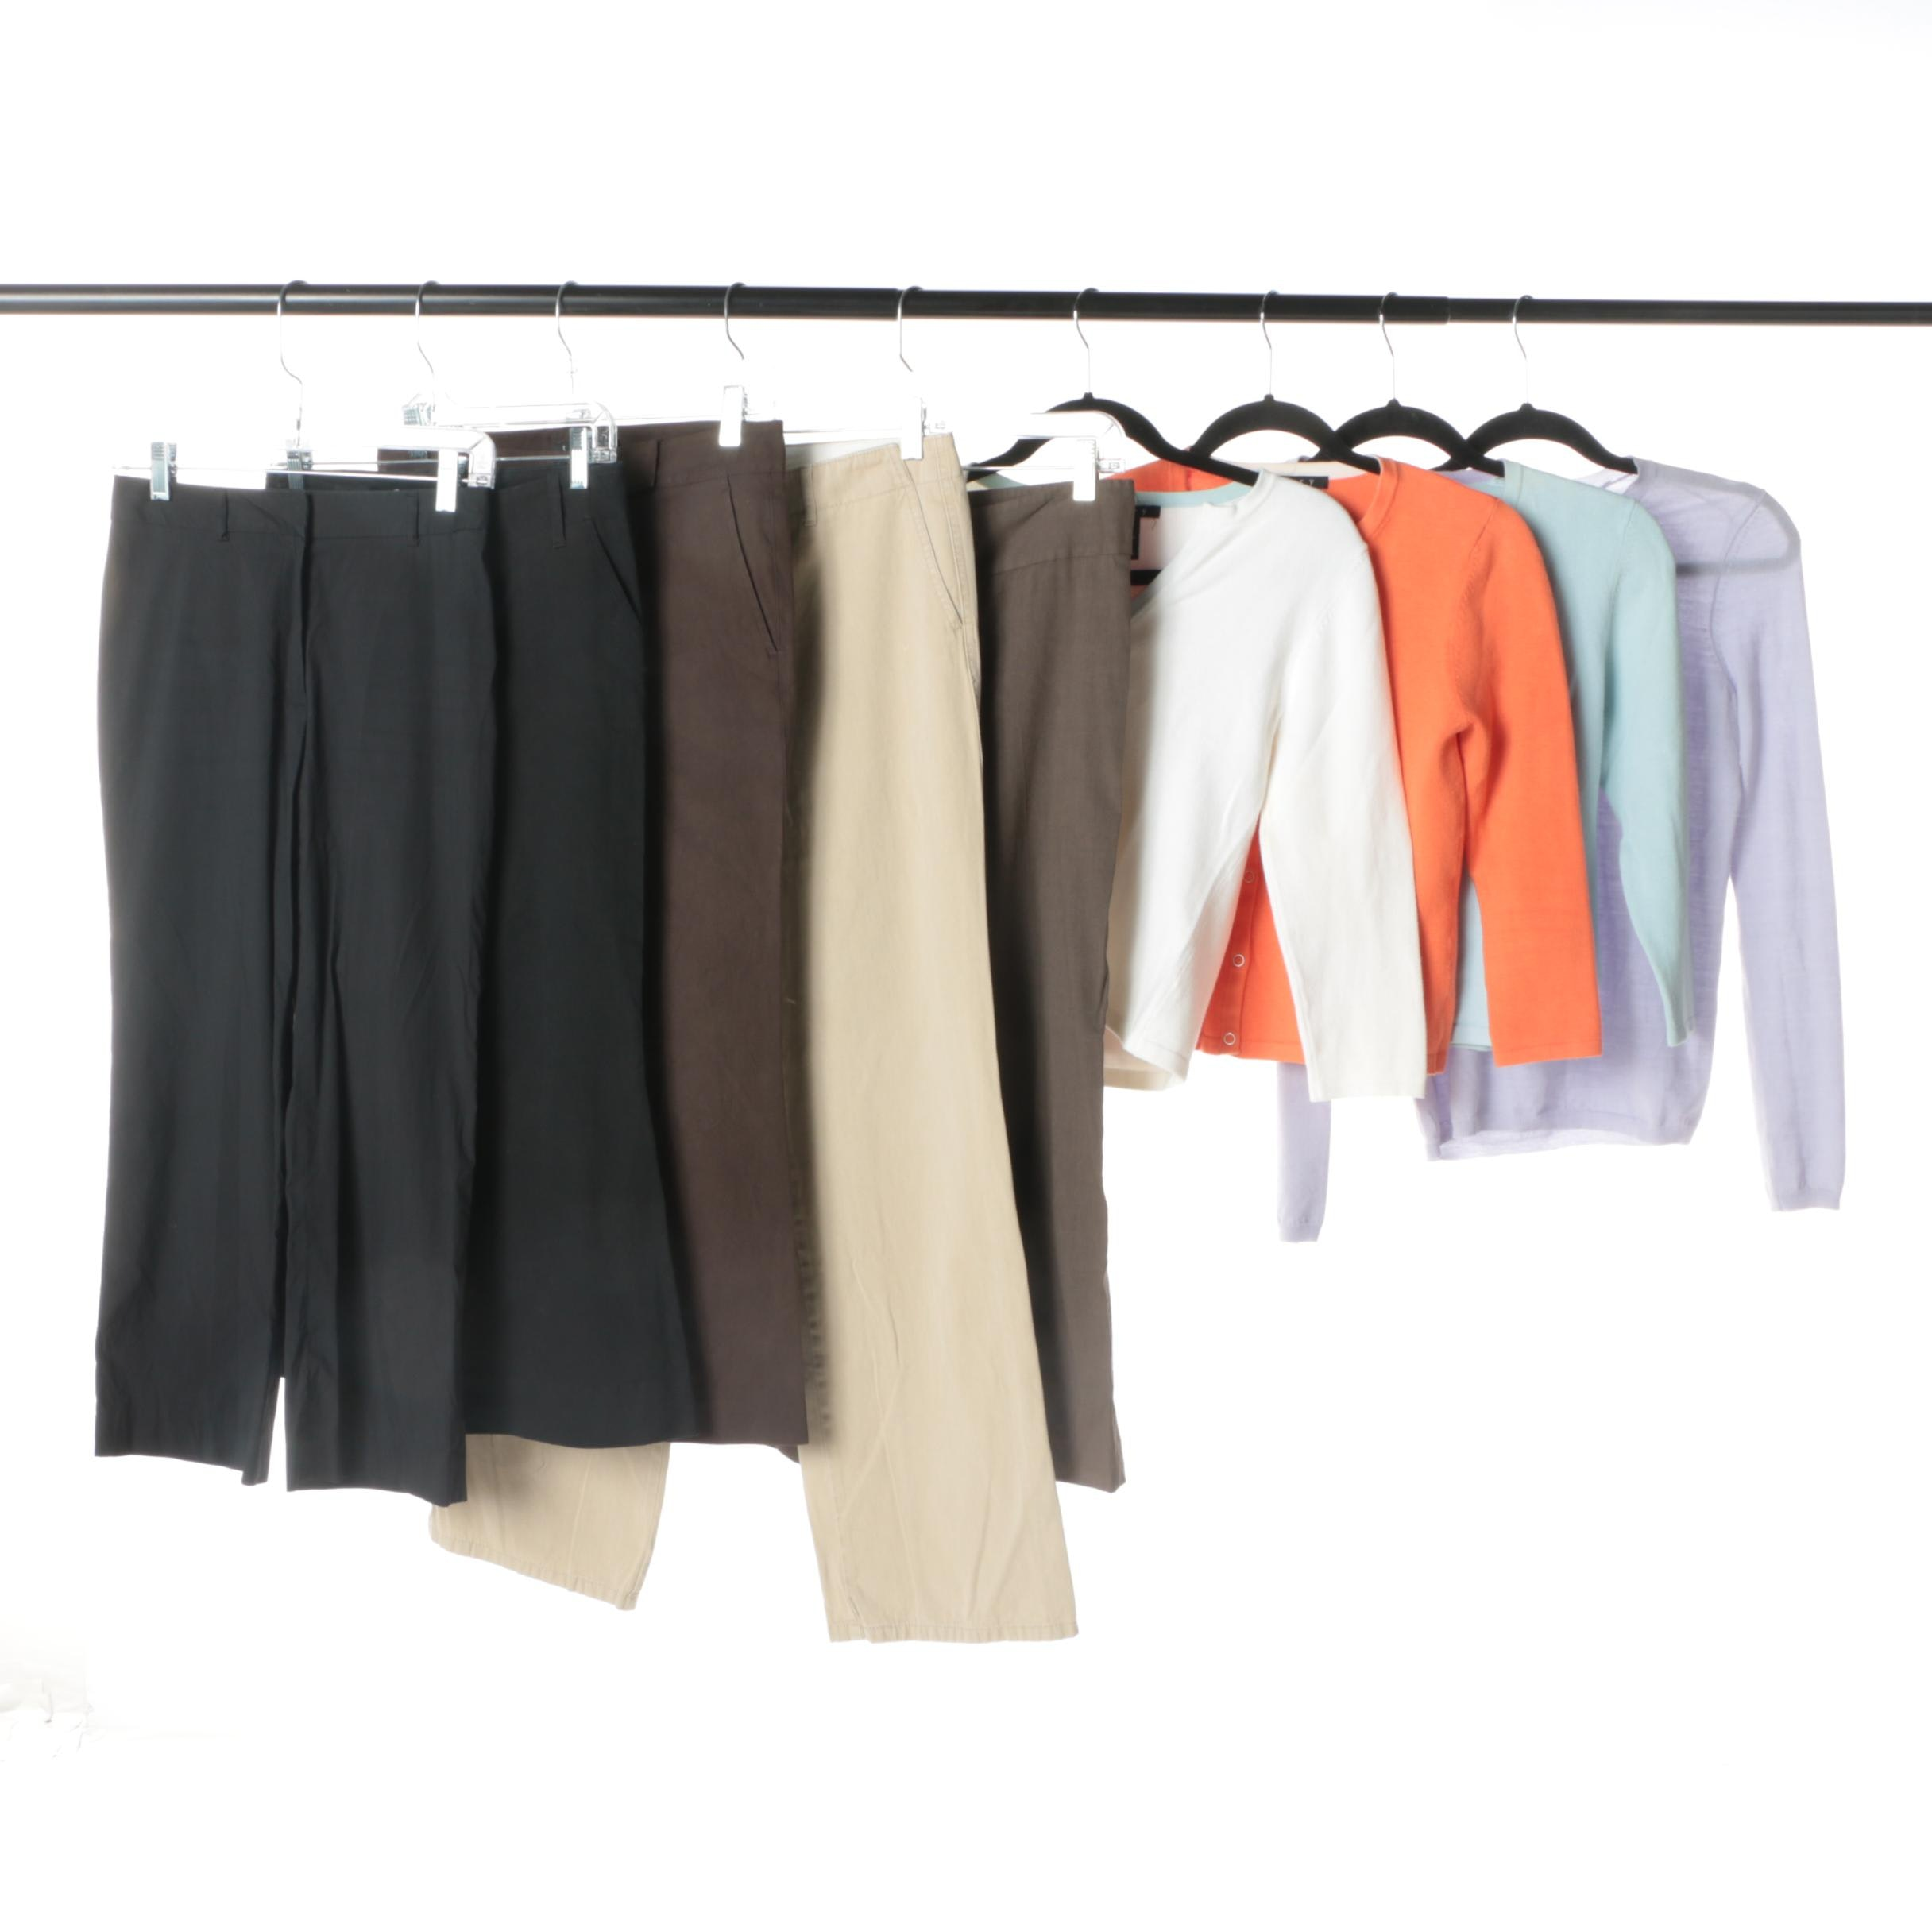 Women's Theory Cardigans, Sweater and Trousers